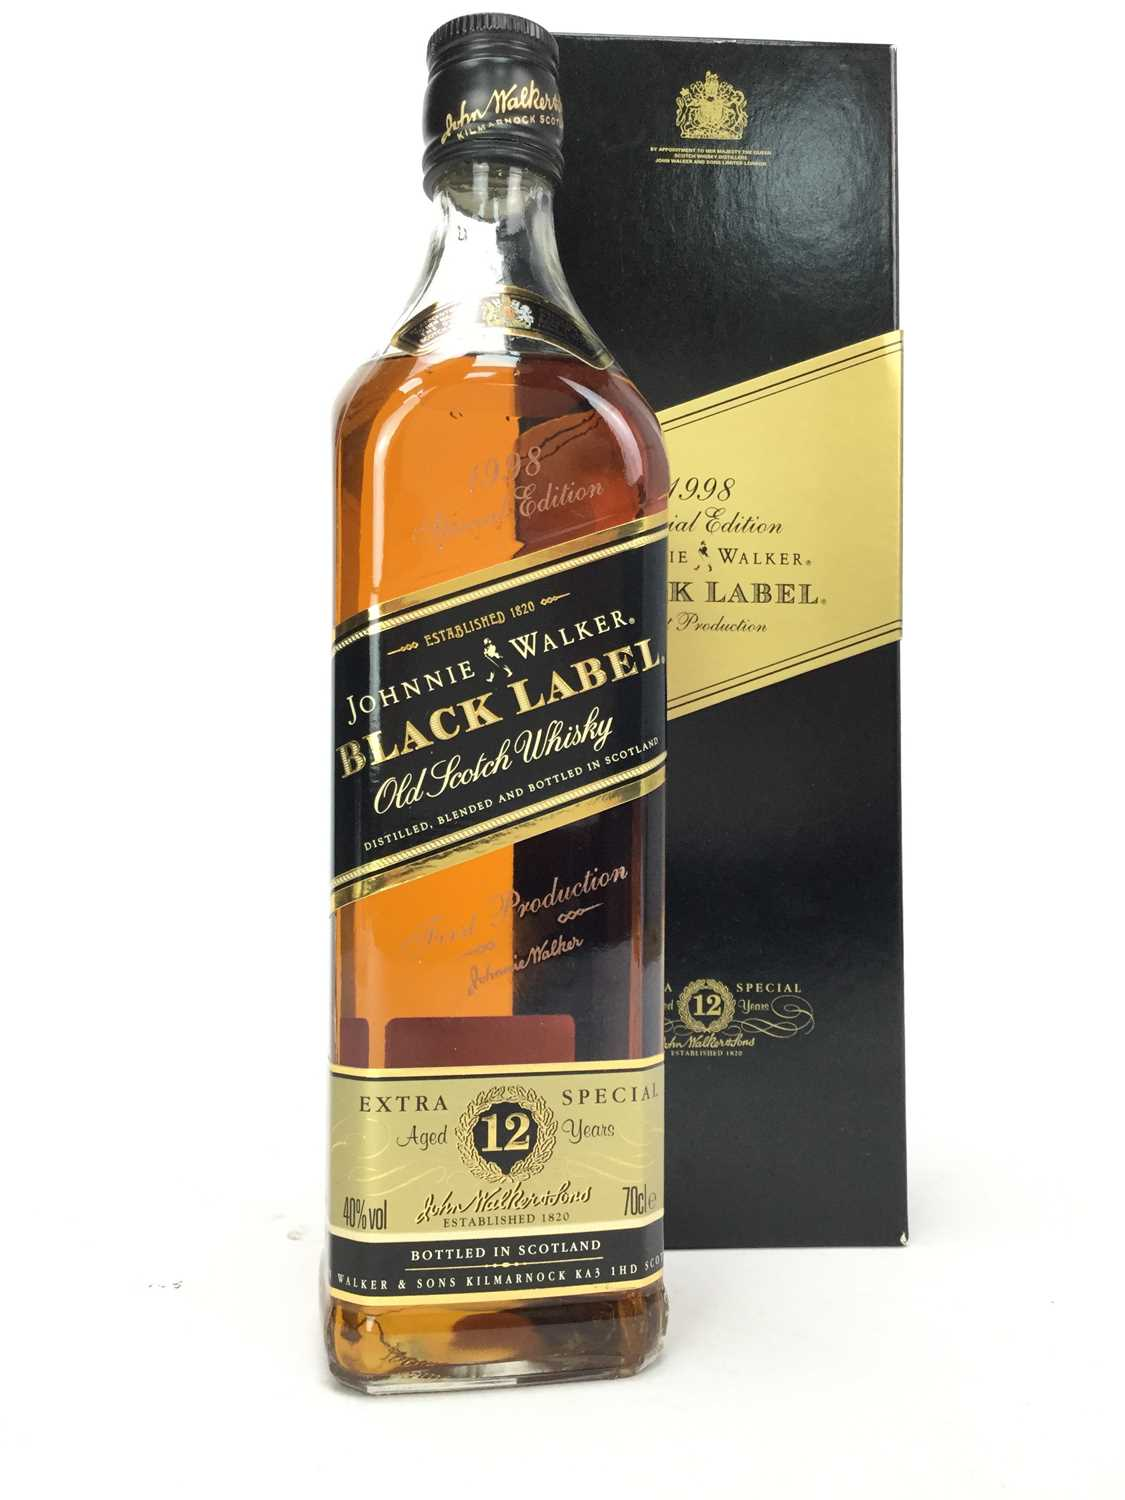 Lot 425 - JOHNNIE WALKER BLACK LABEL AGED 12 YEARS SPECIAL EDITION FIRST PRODUCTION